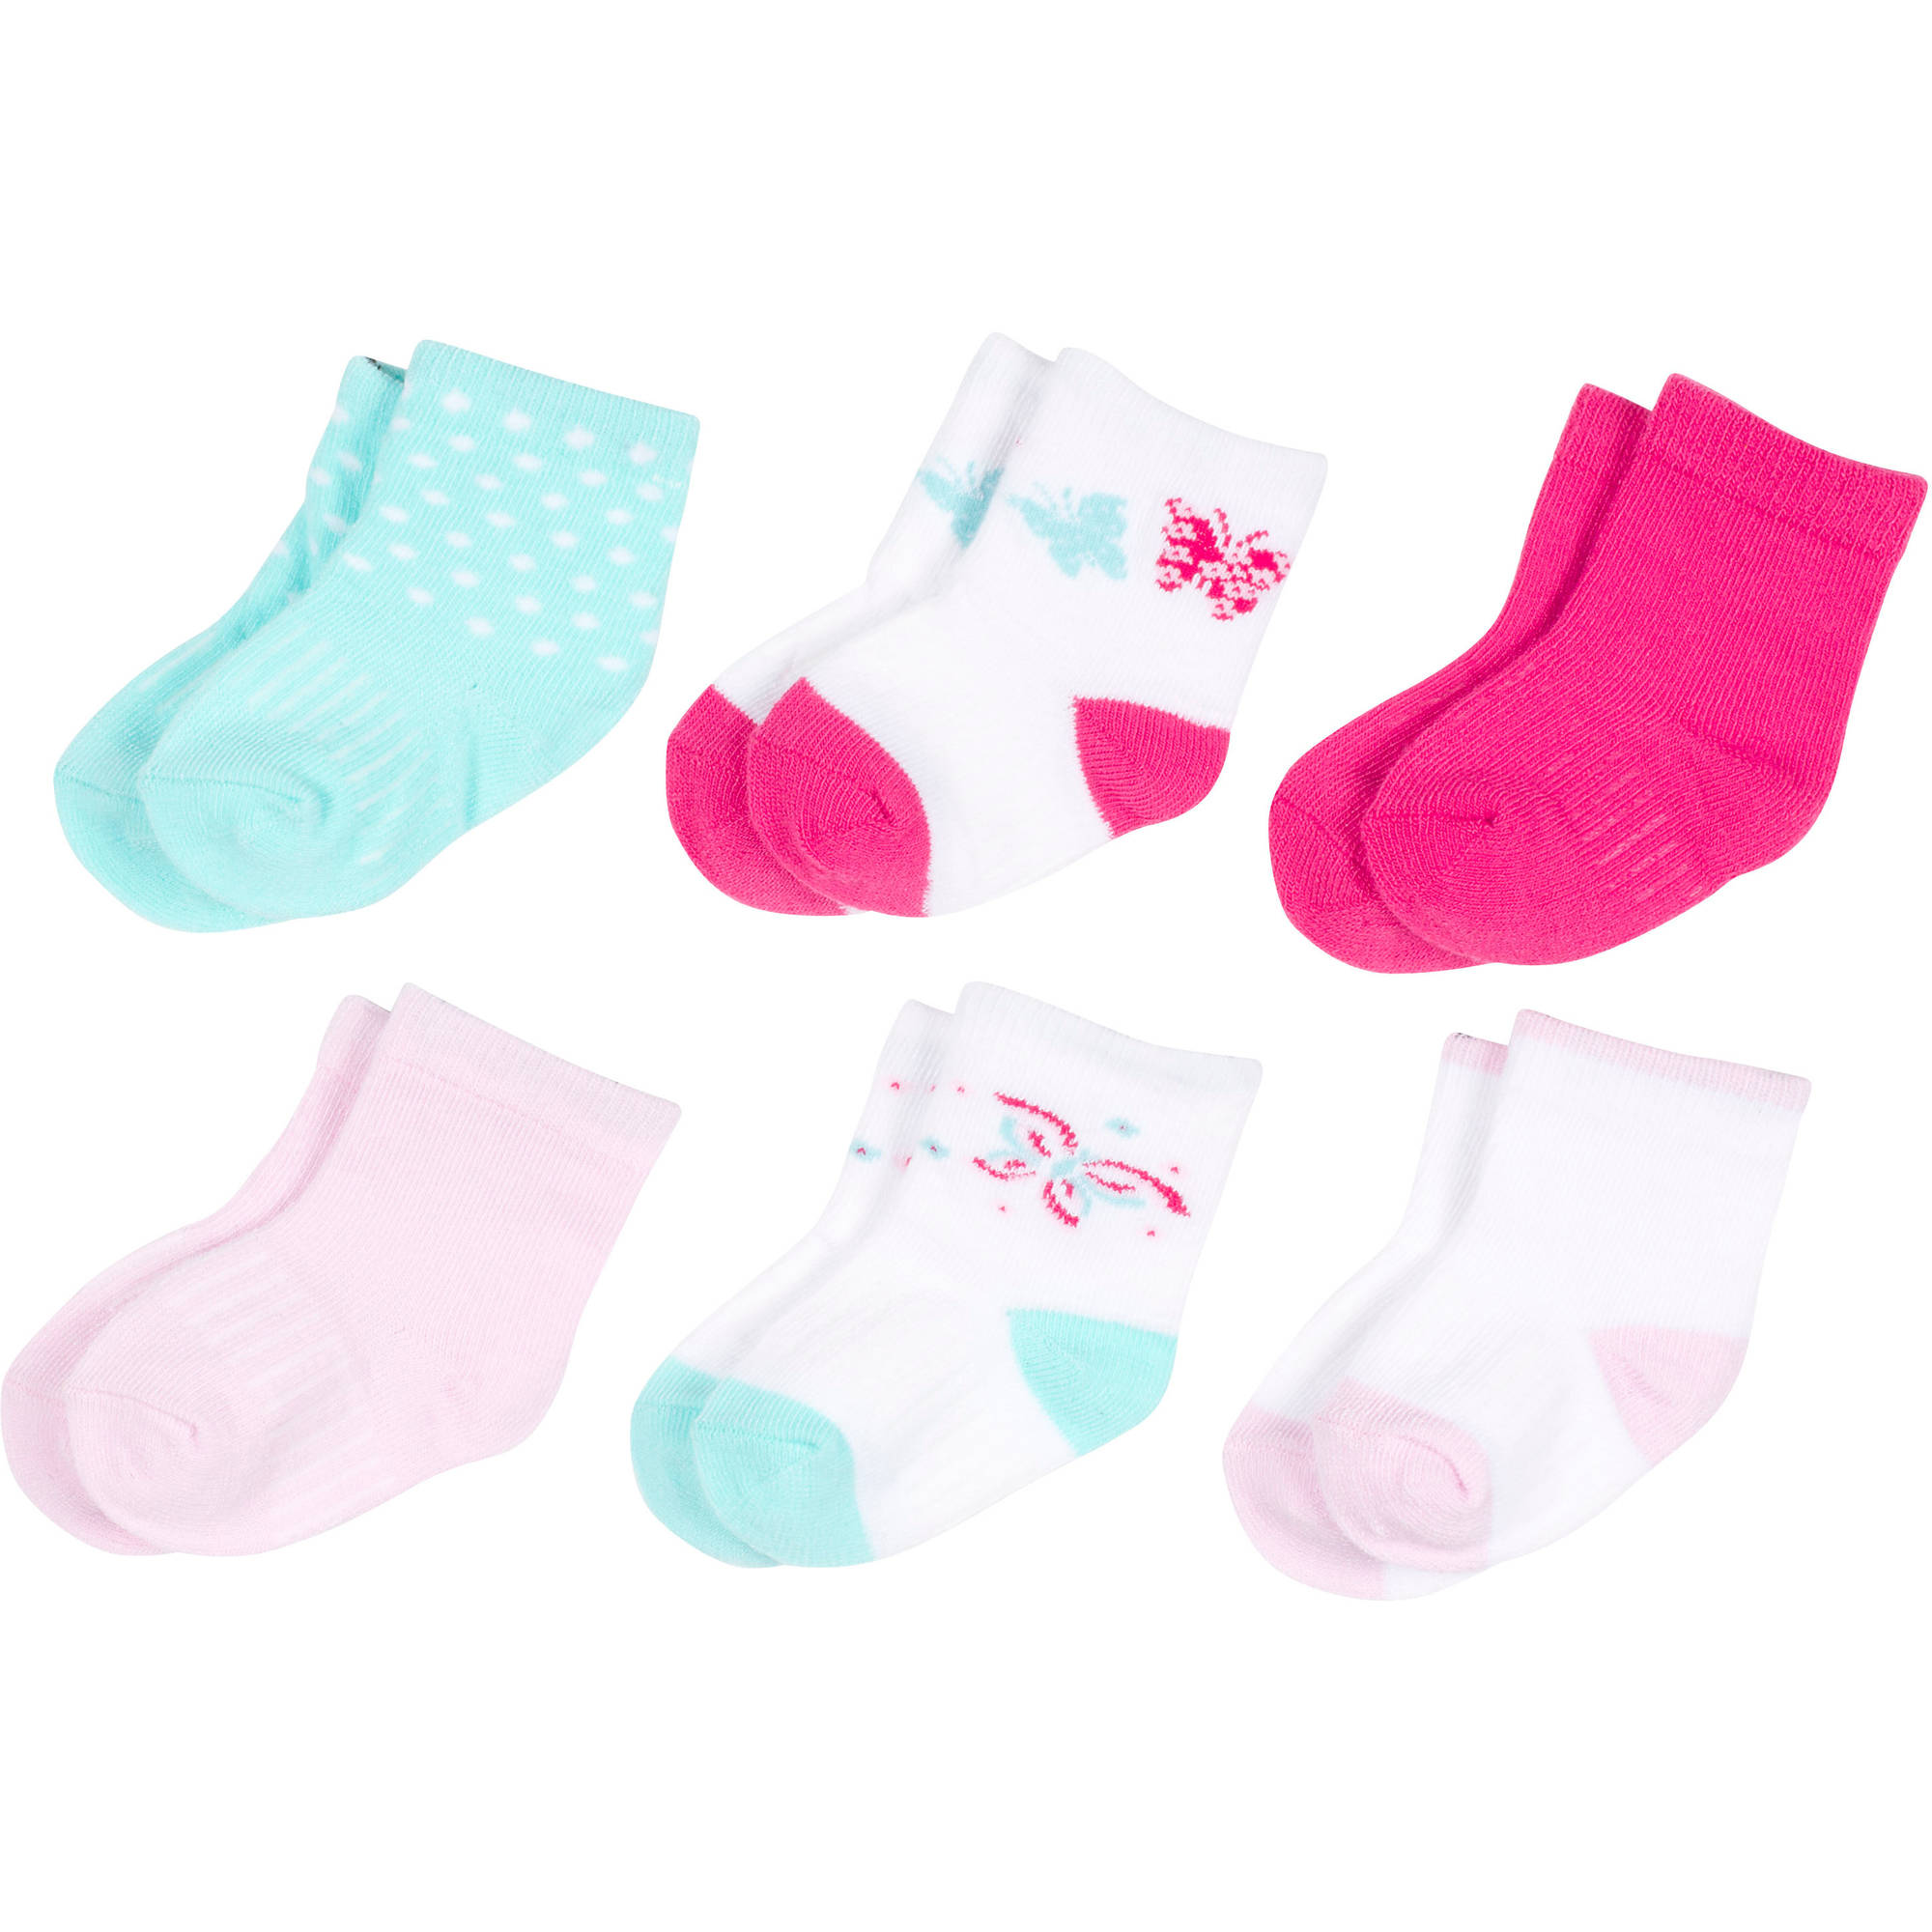 Growing Socks by Peds, Girl Infant, Butterflies, 6 Pairs